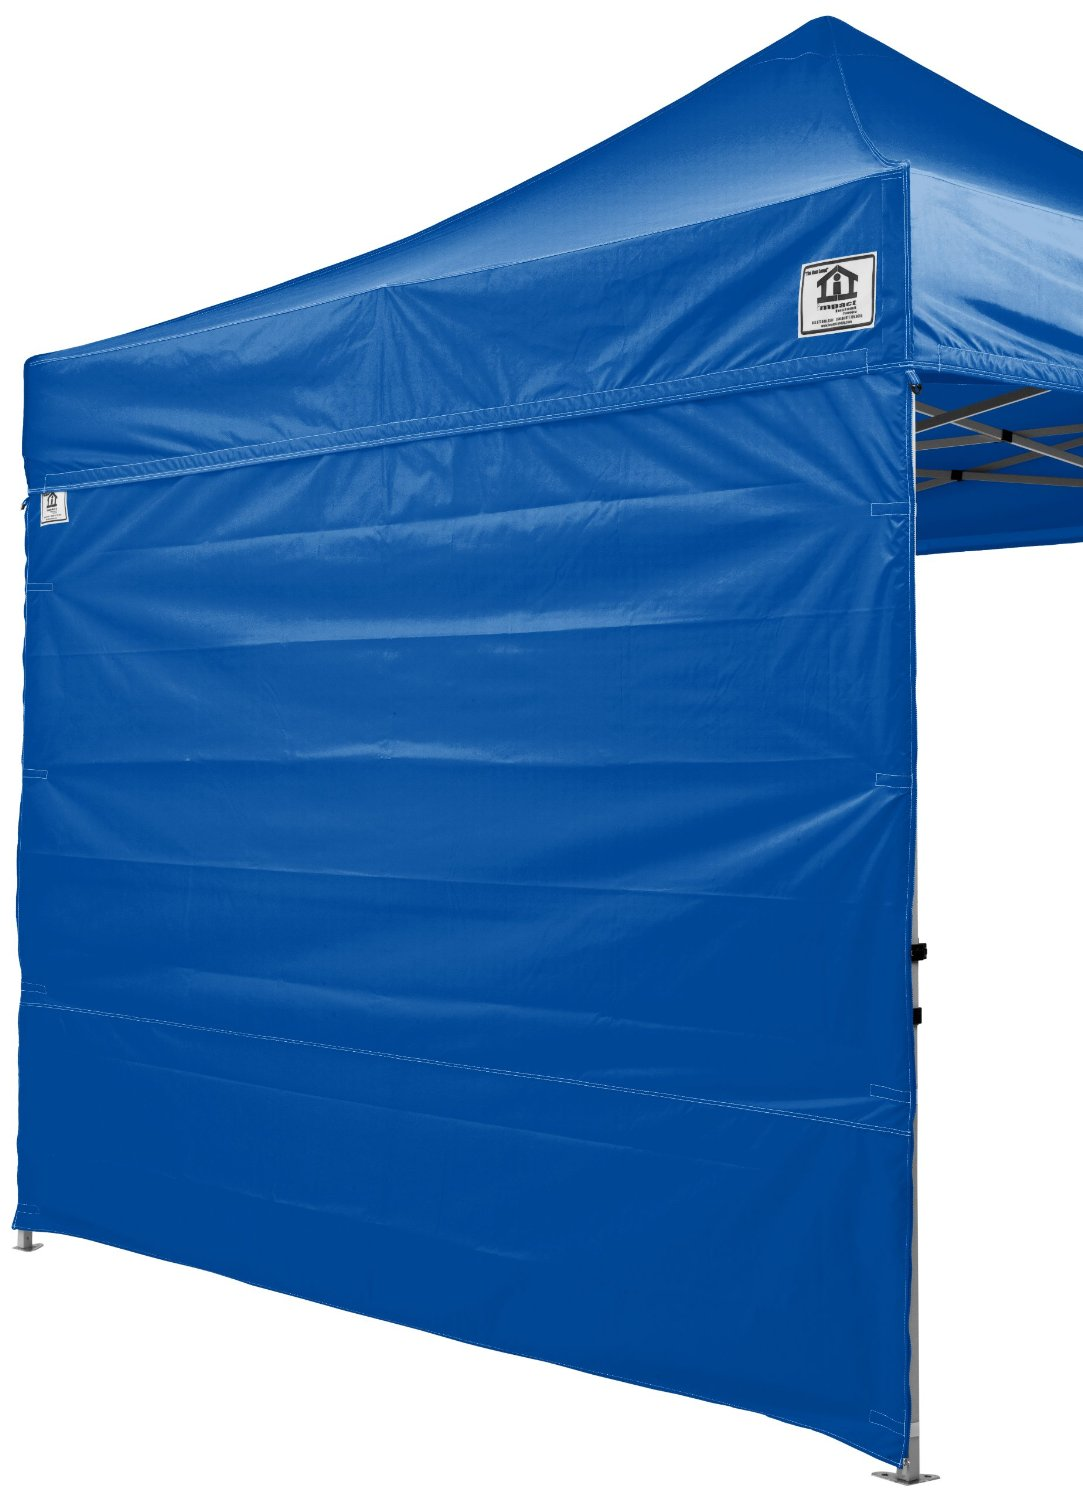 Impact Canopy Side Wall Kit, Canopy Walls for 10x10 Instant Pop Up Canopy Tent, Walls Only, 2 Pack, Royal Blue